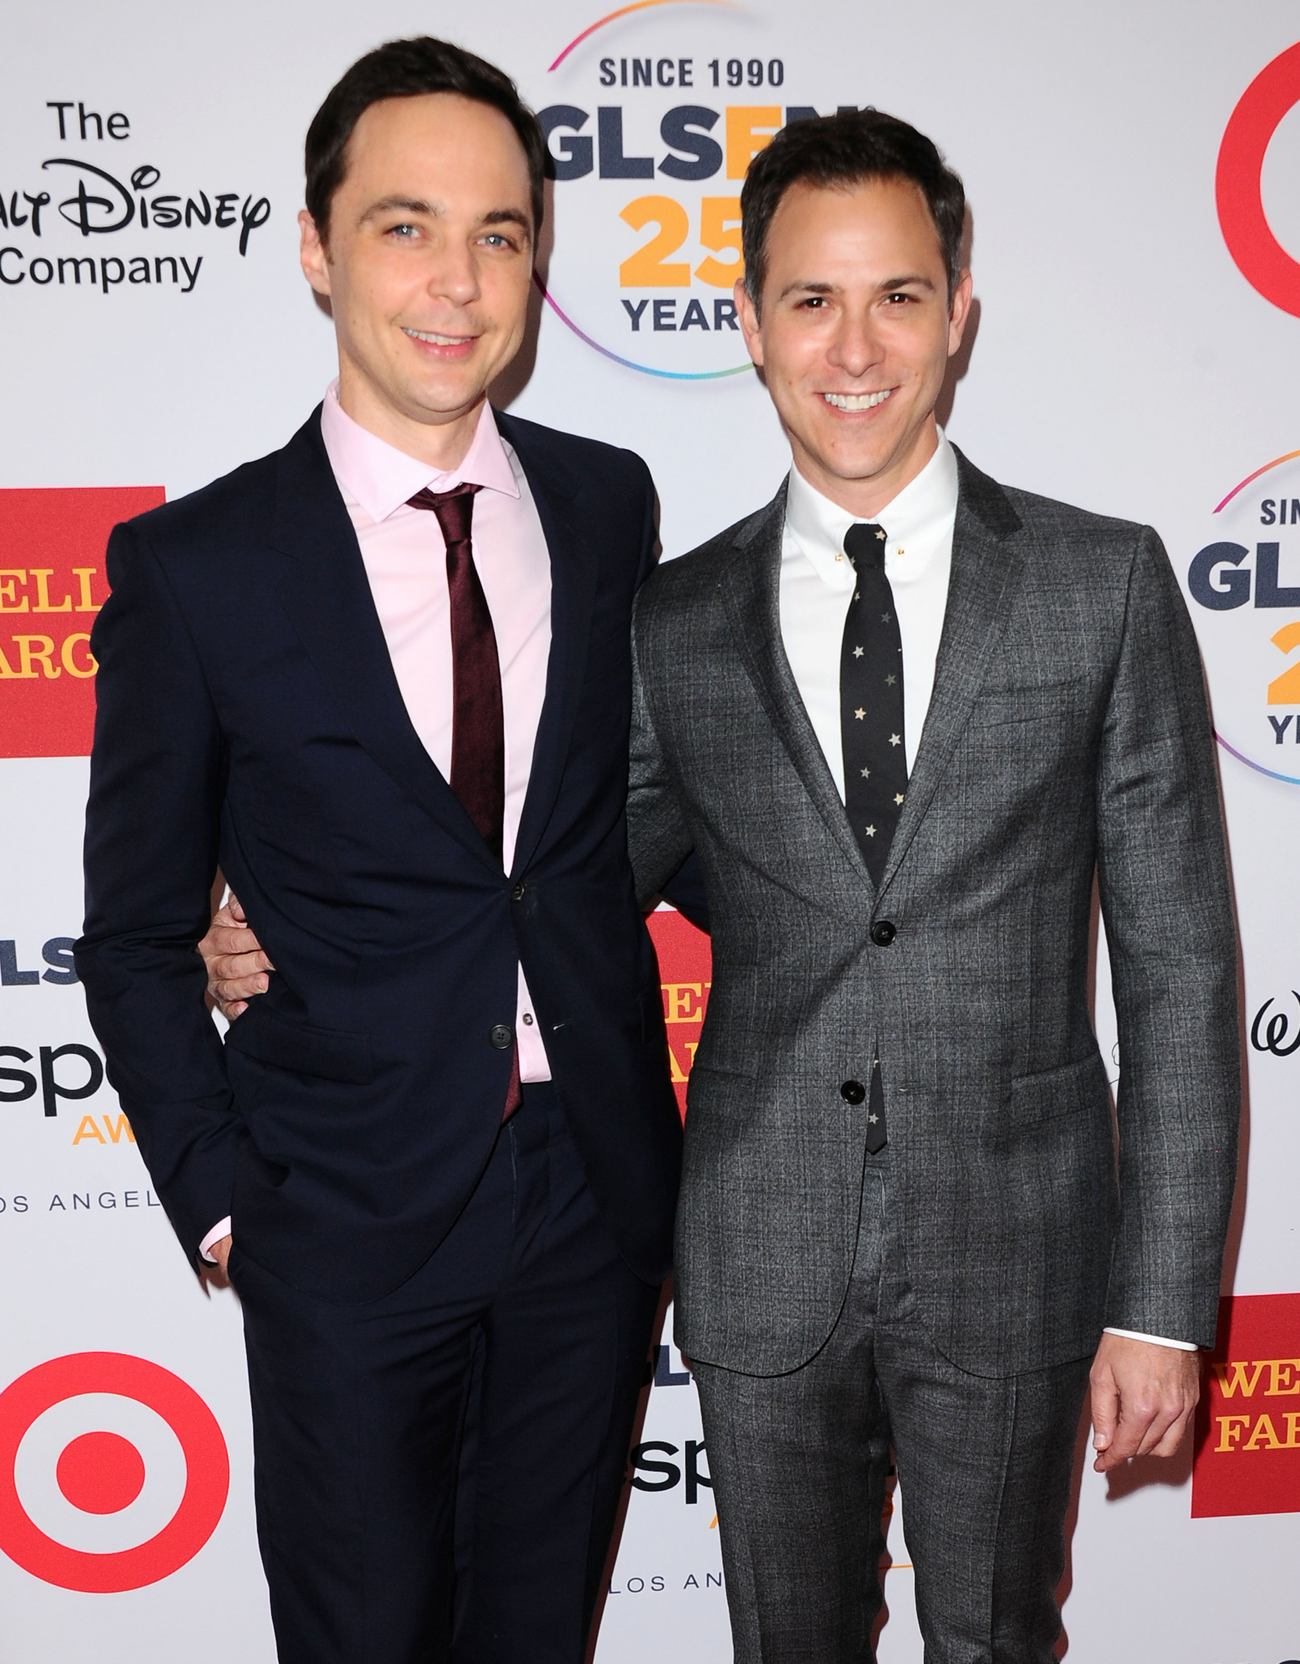 jim-parsons-and-todd-spiewak-lgbt